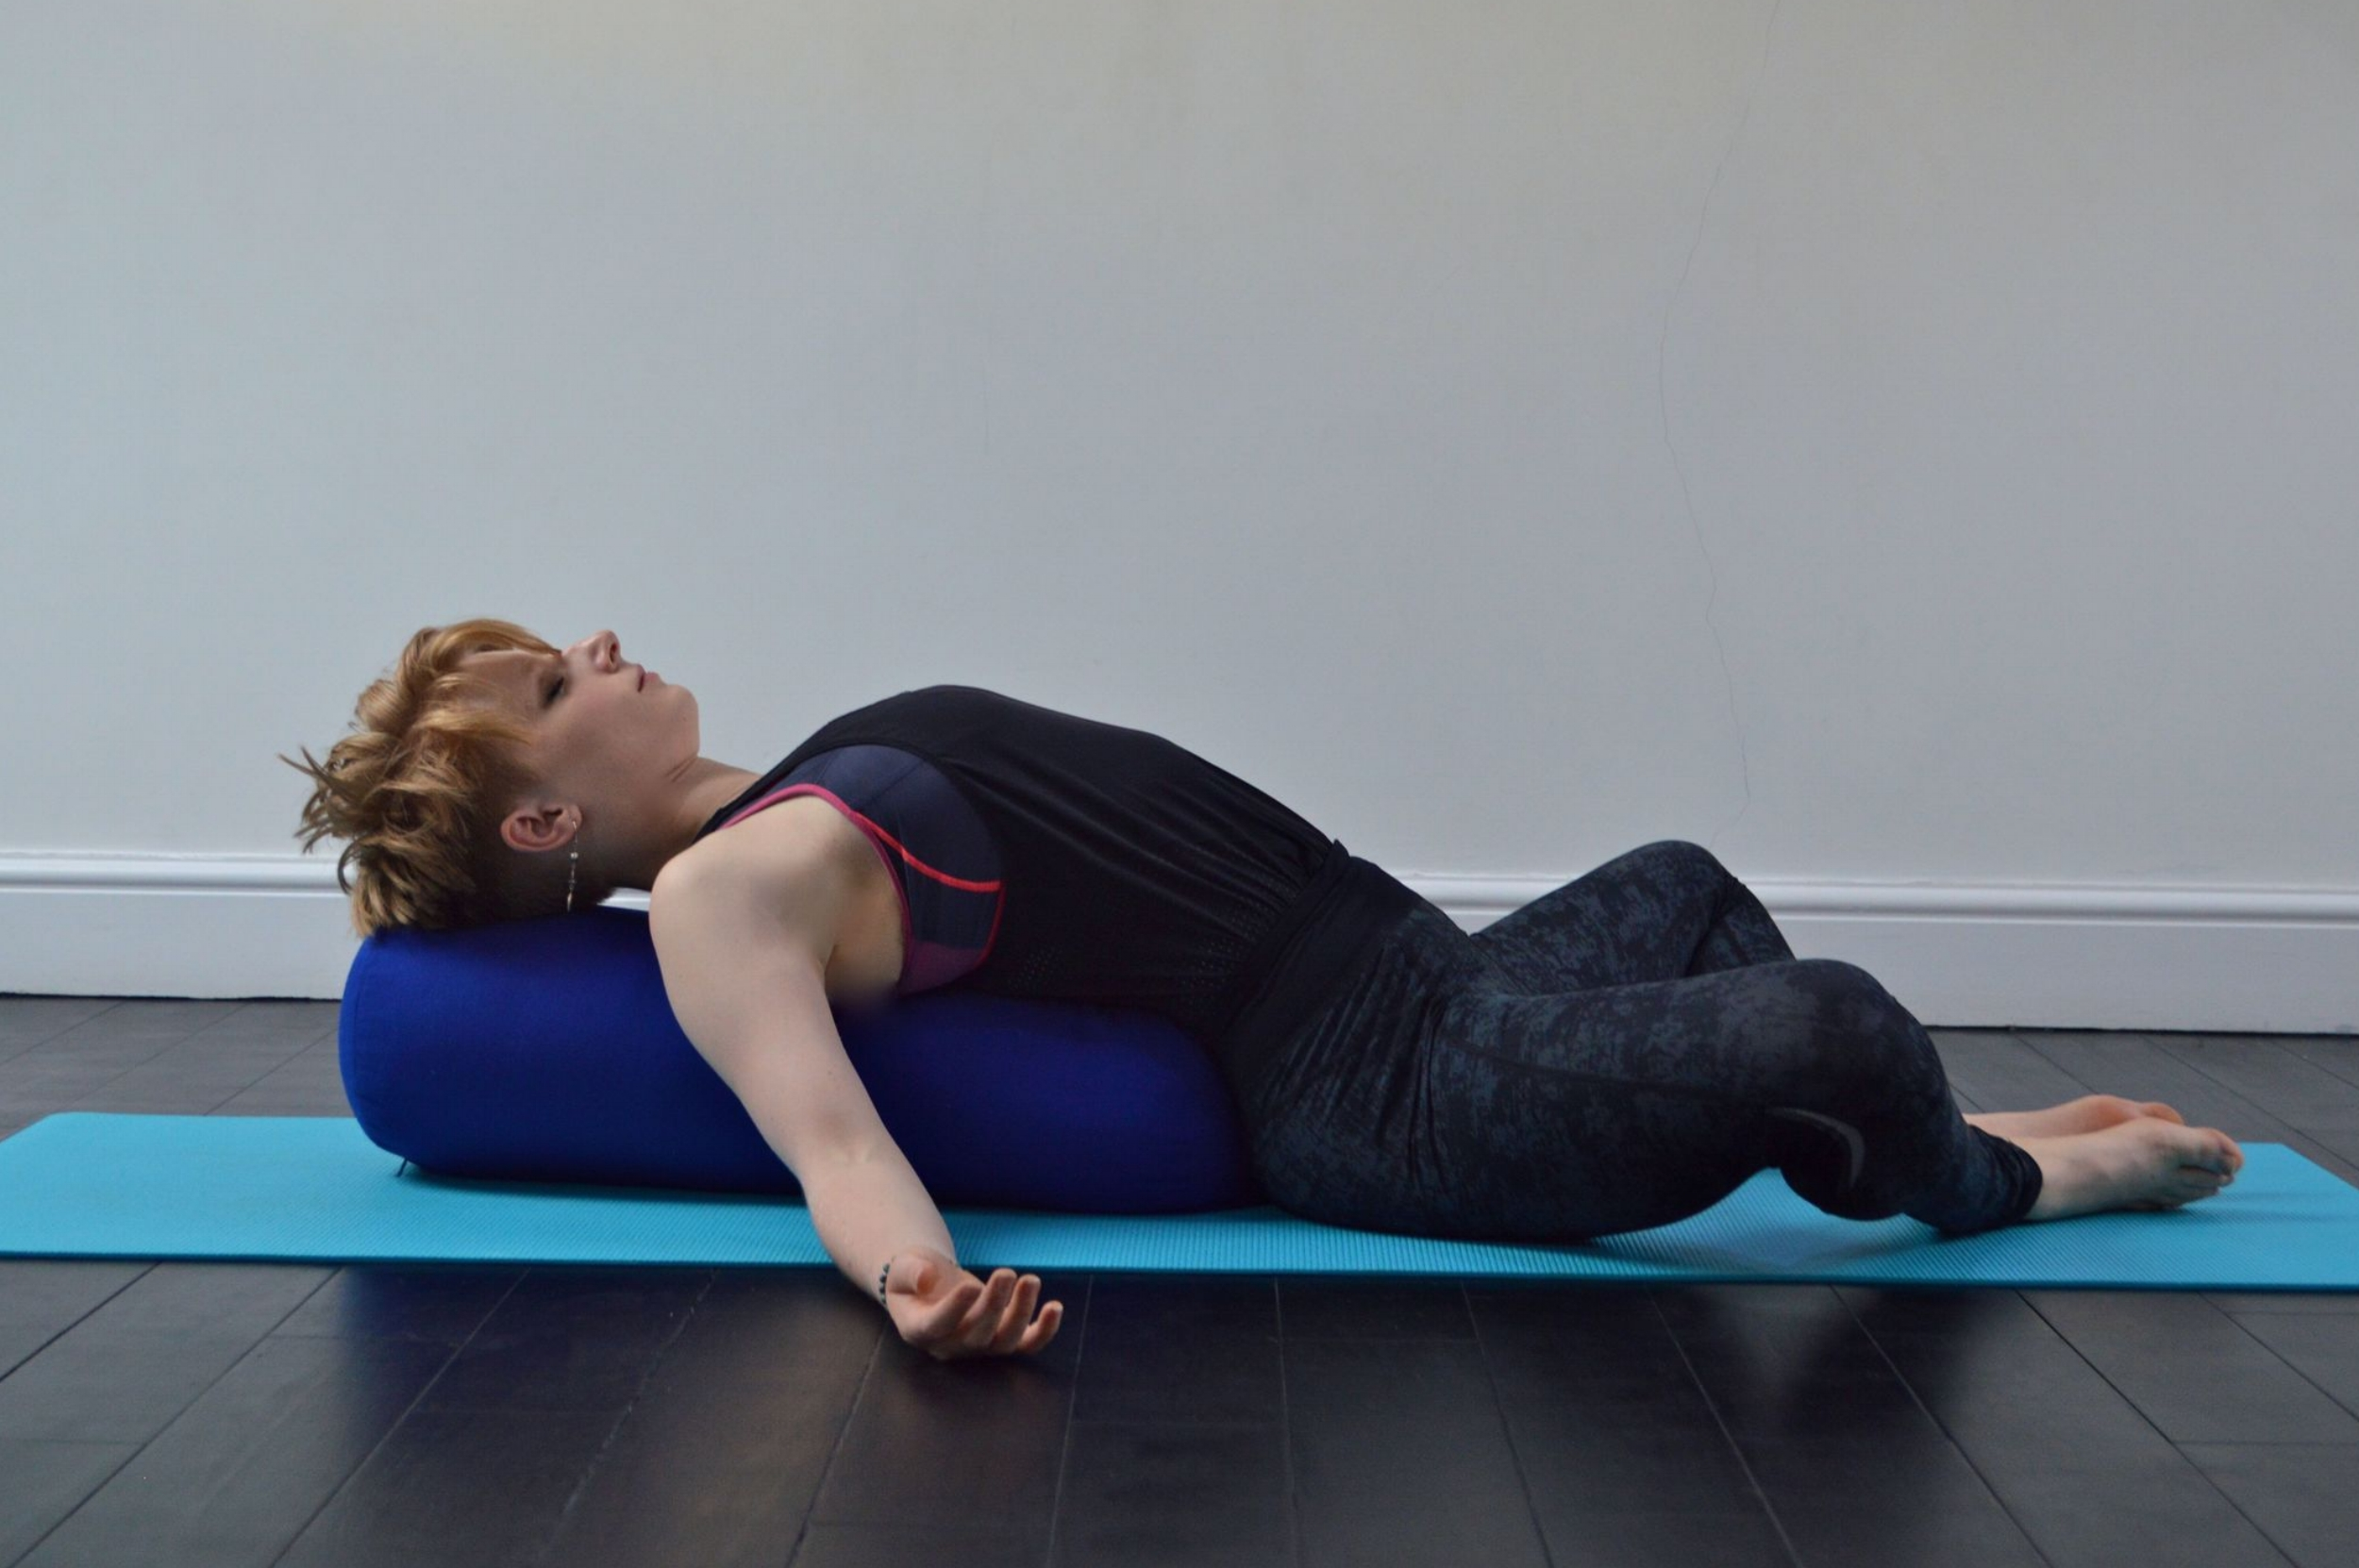 Rest the back of the body on a bolster or pillow, letting the chest open and the shoulders release away from the ears. The back of the neck is long, and your legs can be in any configuration that is comfortable. Close the eyes, soften the face, relax, and breathe.